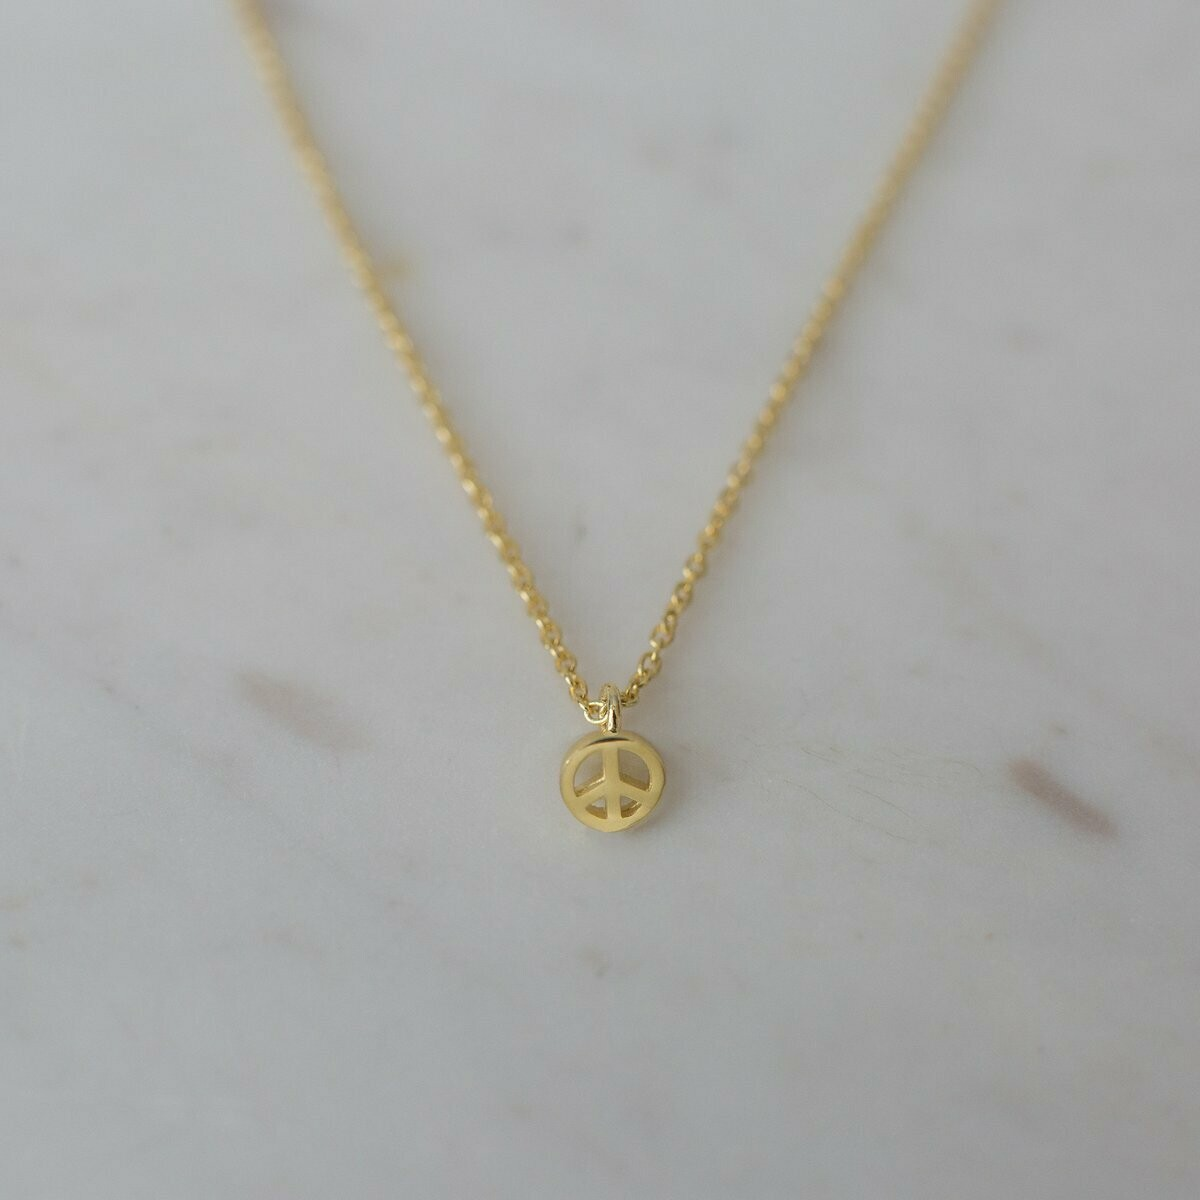 Peace Necklace - 14kt Gold Plated